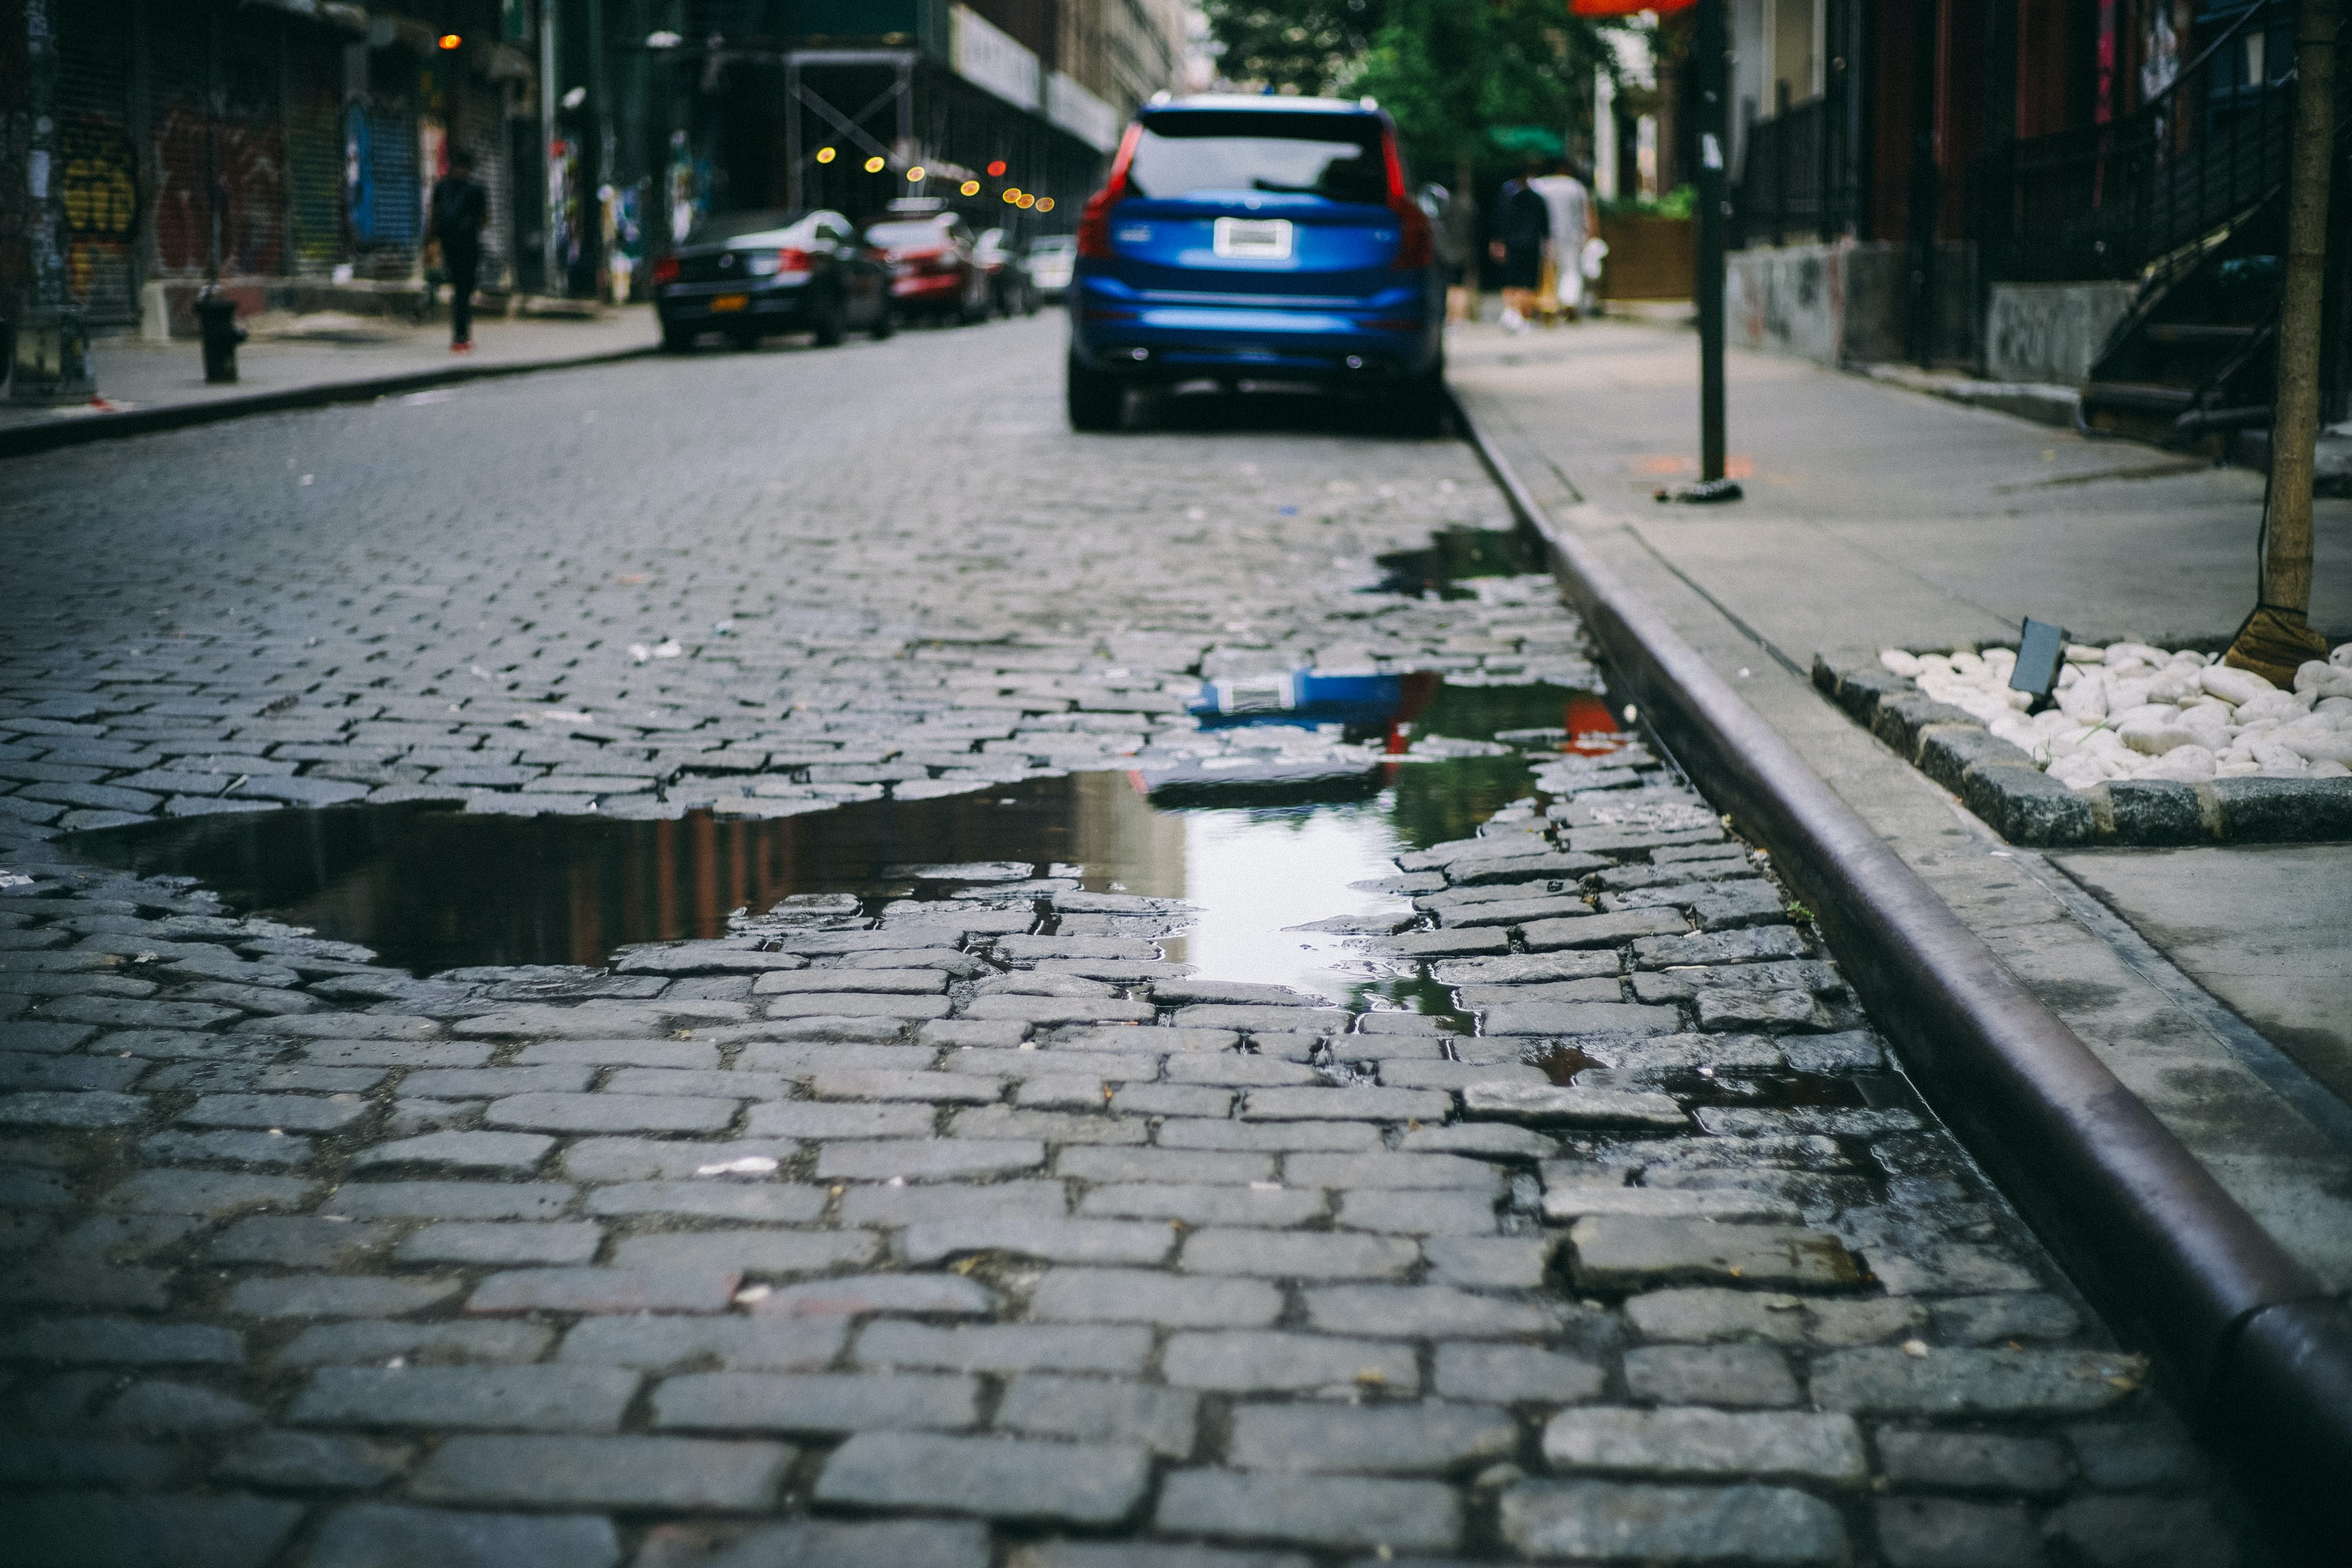 Cobblestone street with parked car and puddle reflecting sky